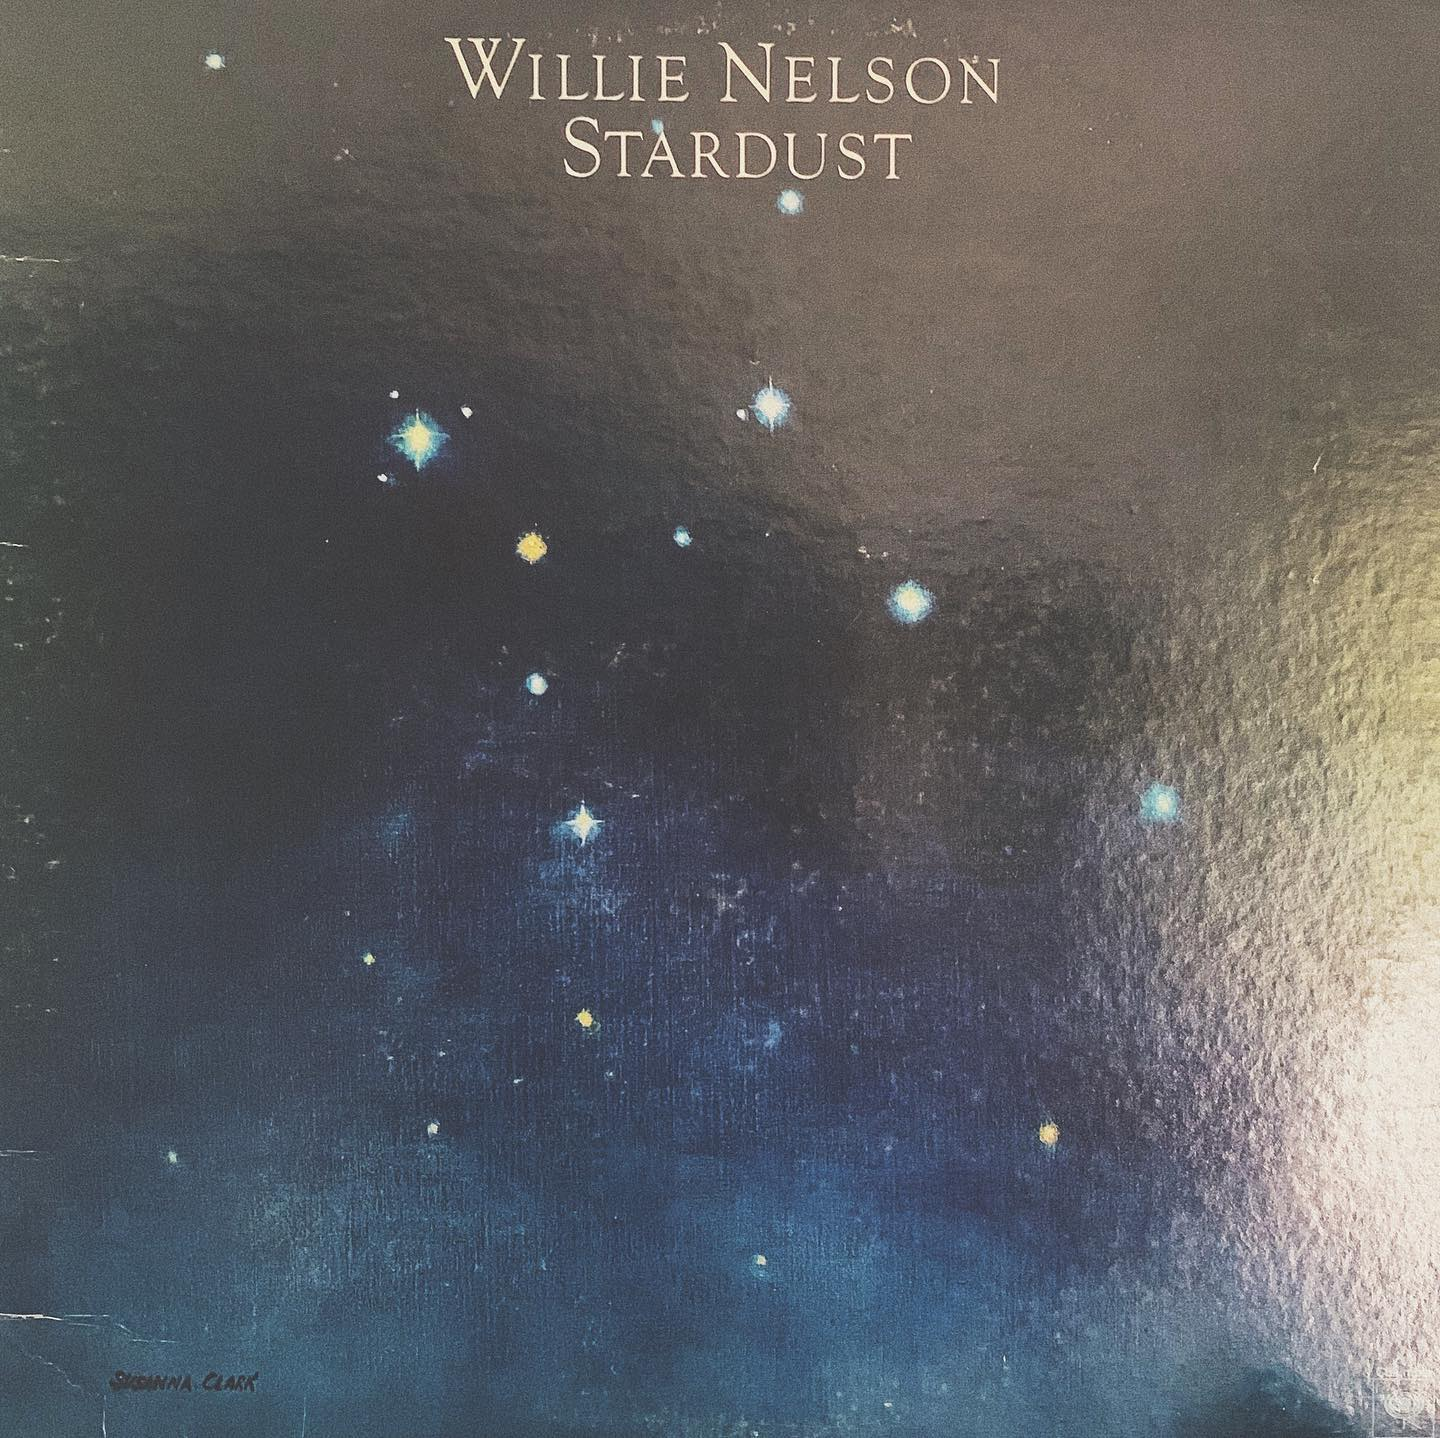 "#ondeck - ""Stardust"" Willie Nelson: Sweet Americana takes of pop standards. Not his best work by any means but there are some pretty gems on here."